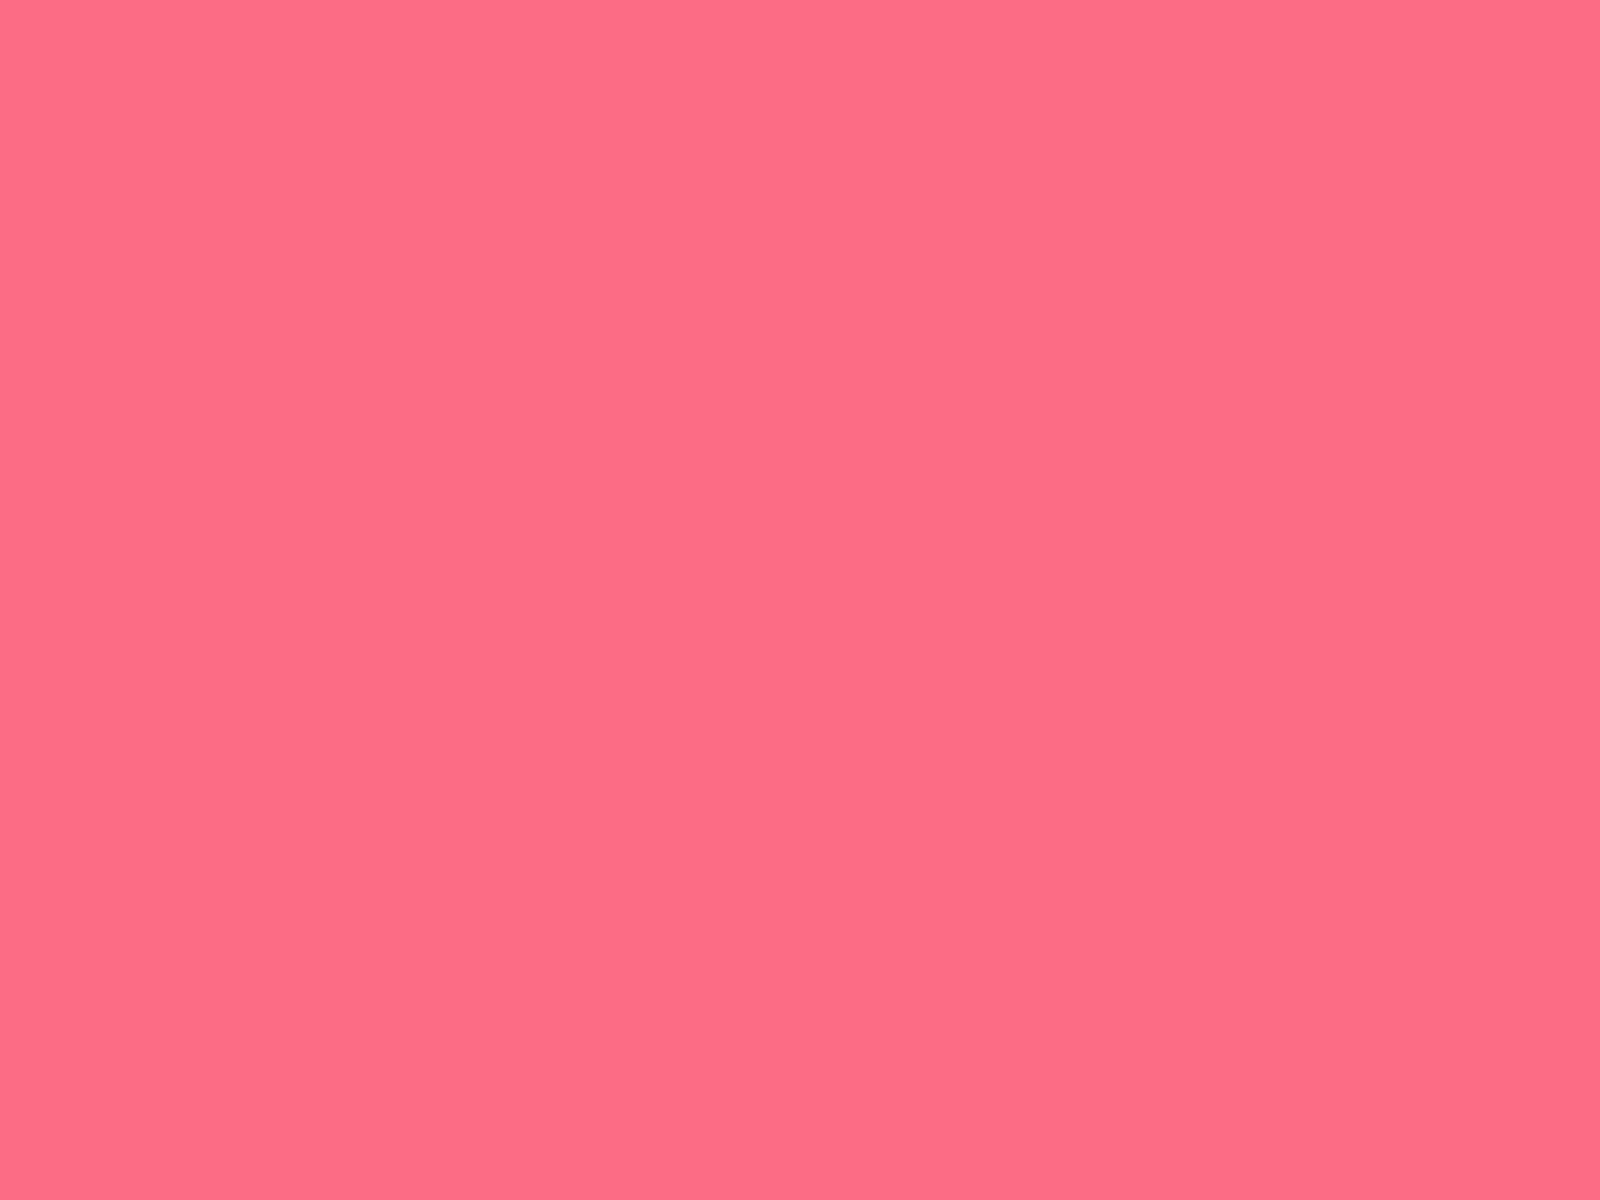 1600x1200 Wild Watermelon Solid Color Background